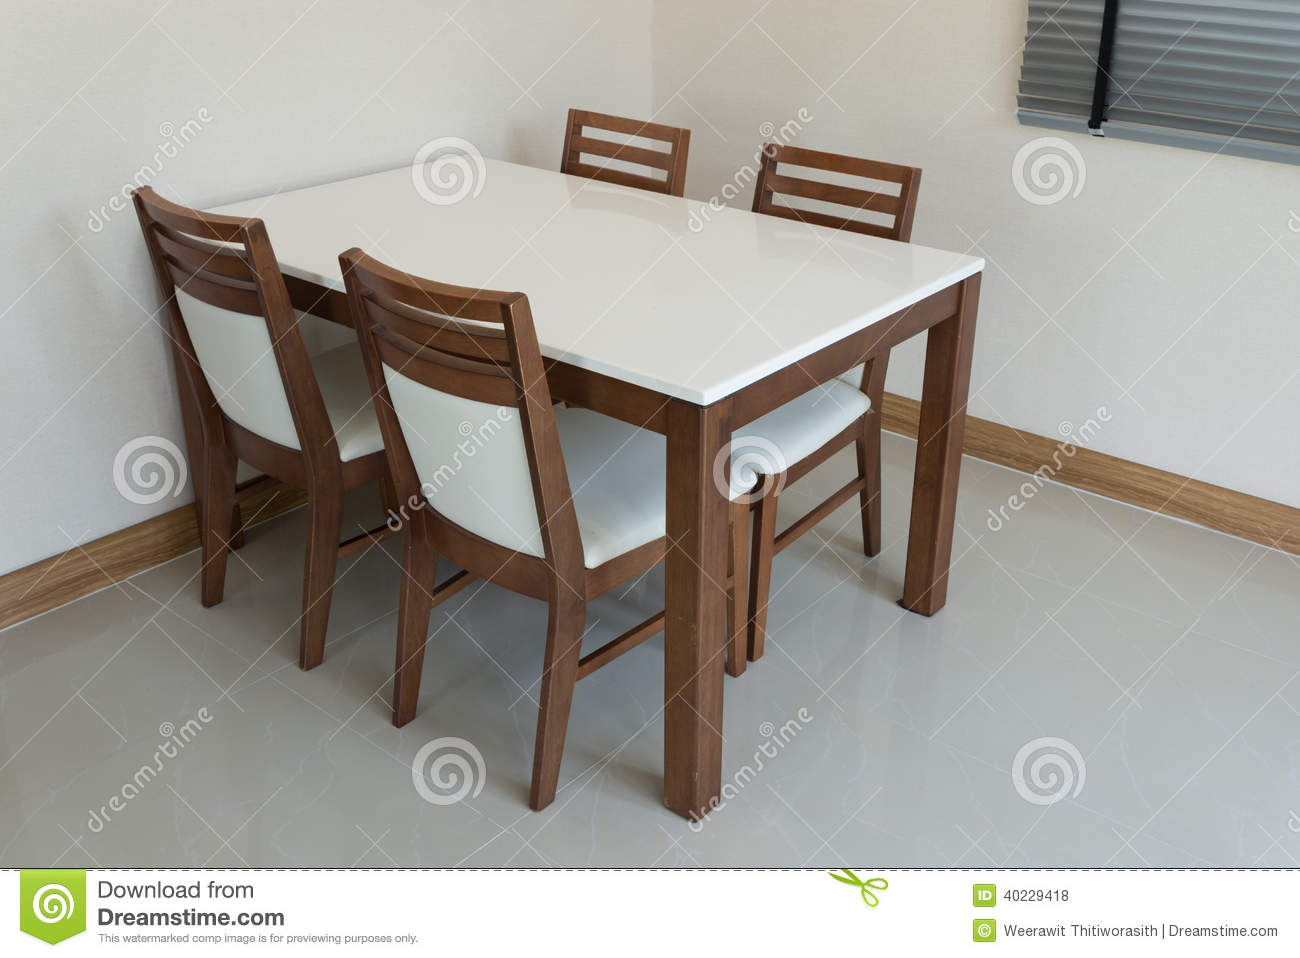 Table de salle manger en bois photo stock image 40229418 for Table de salle a manger en bois